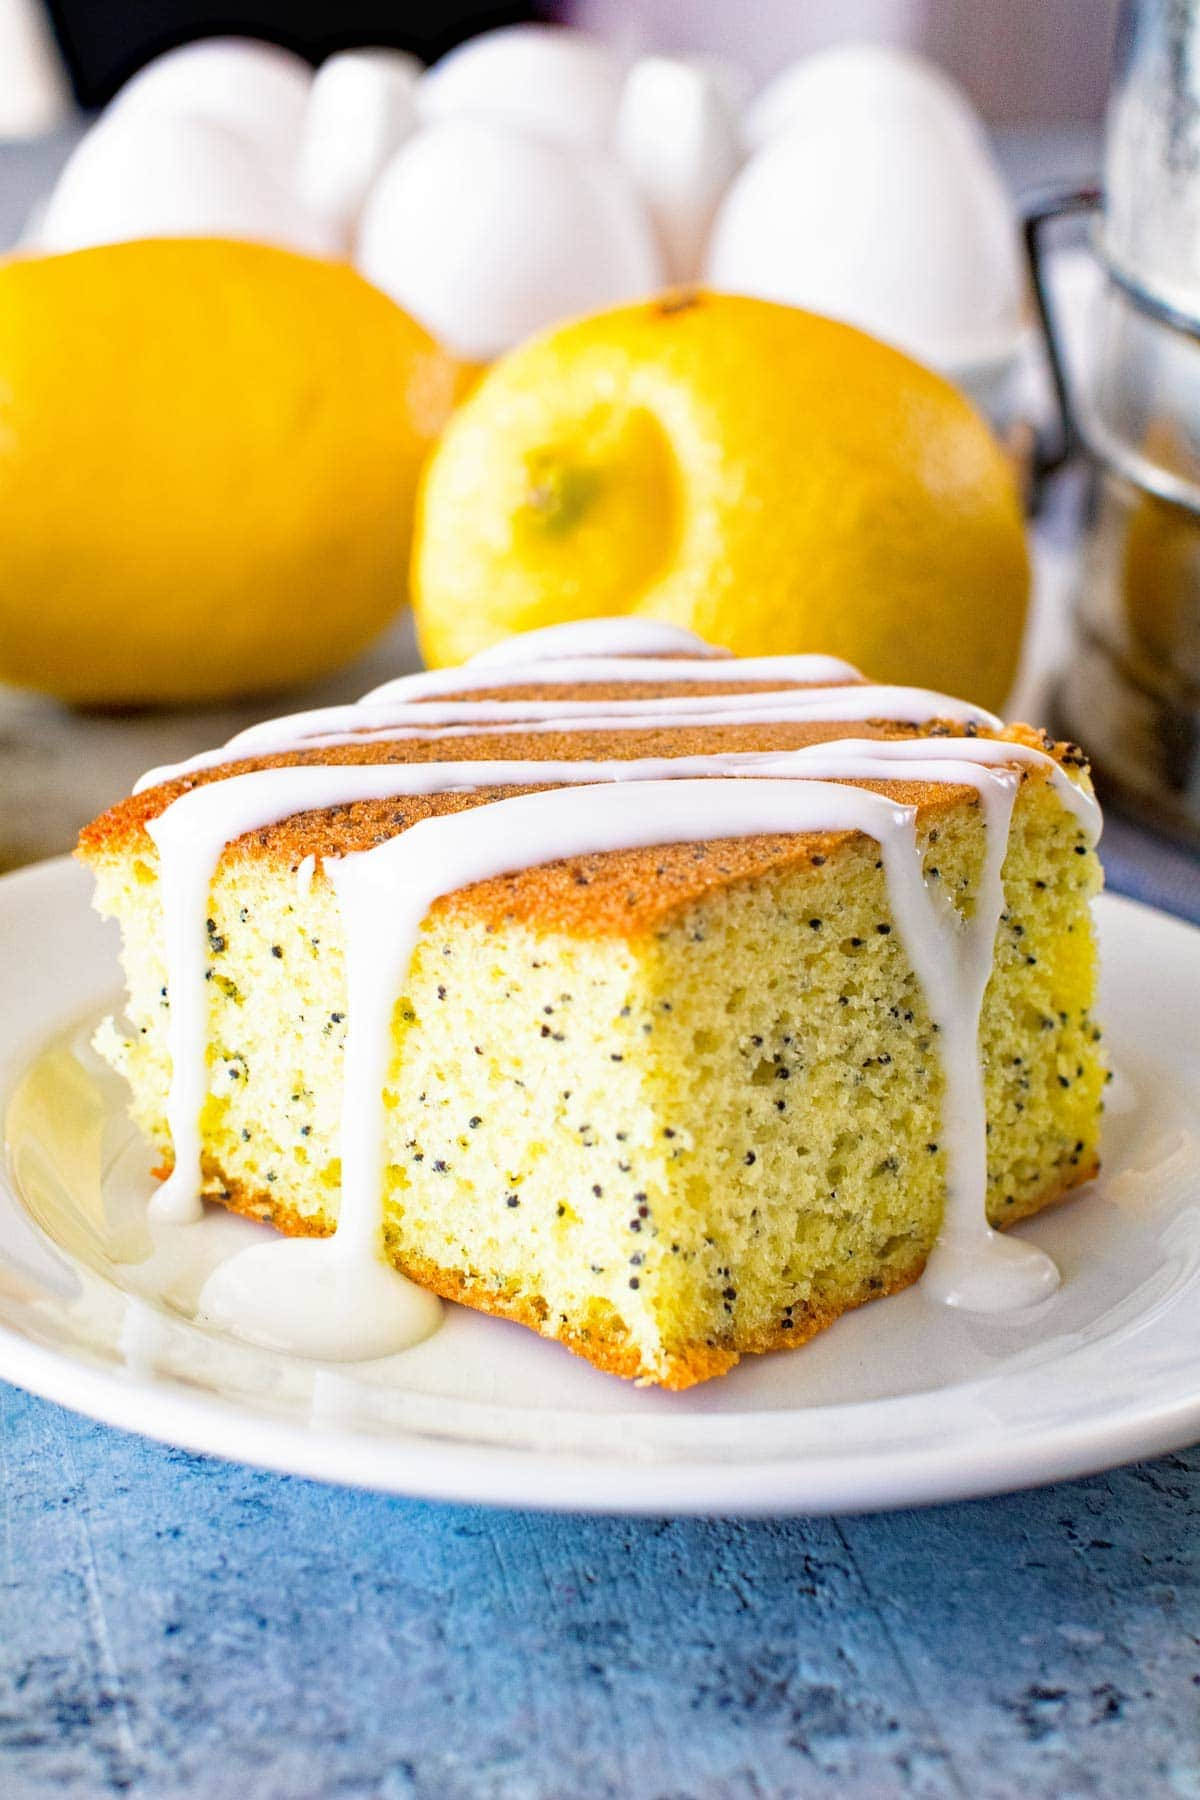 Lemon Poppy Seed Cake From Cake Mix And Pudding